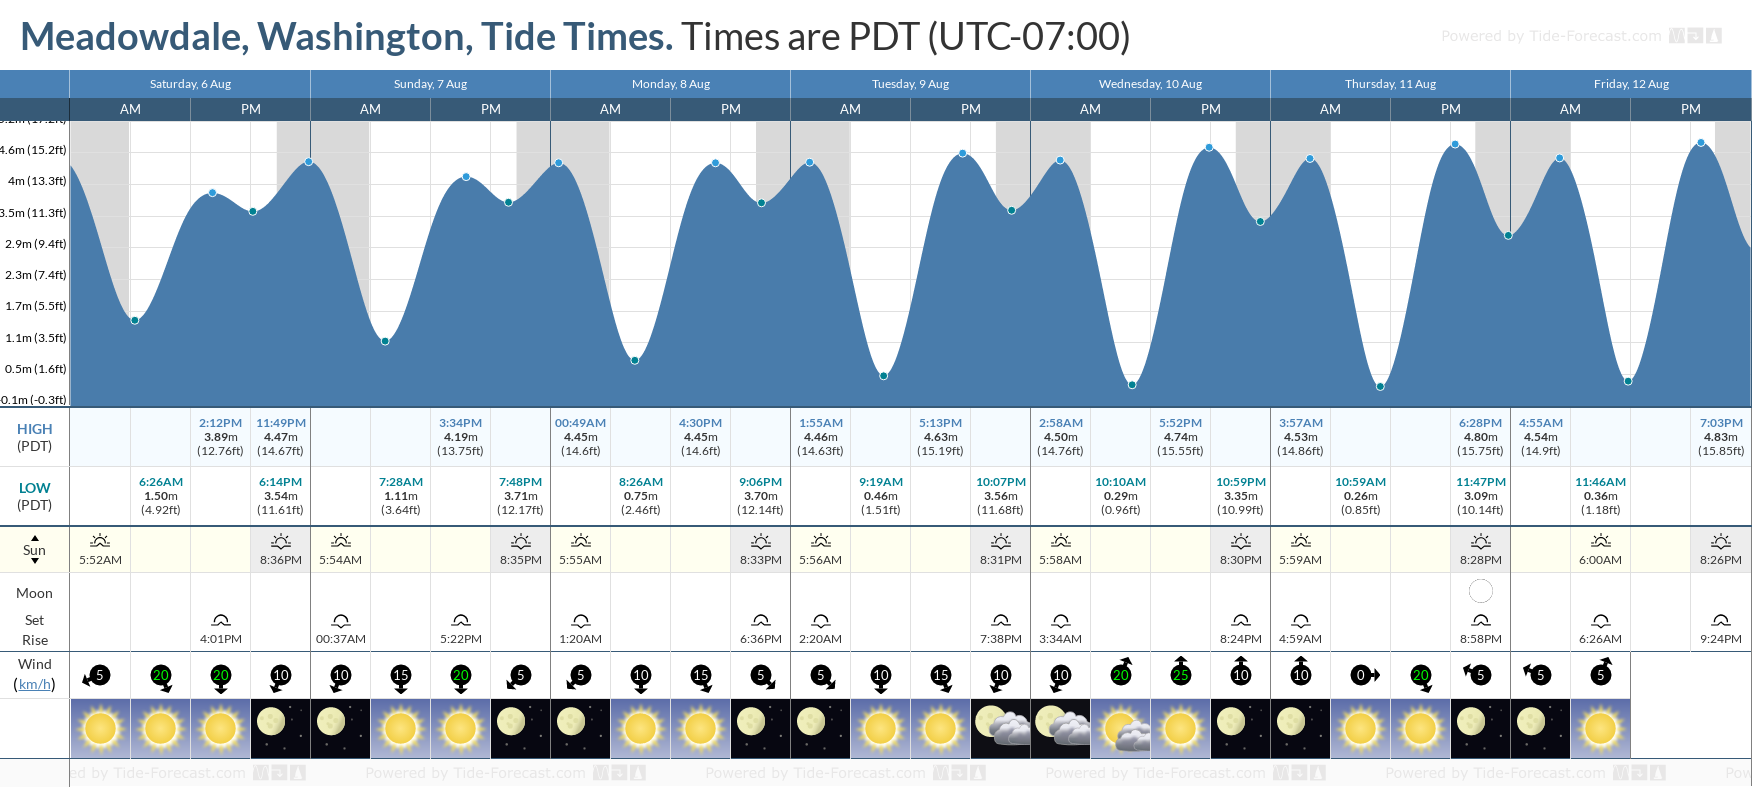 Meadowdale, Washington Tide Chart including high and low tide tide times for the next 7 days